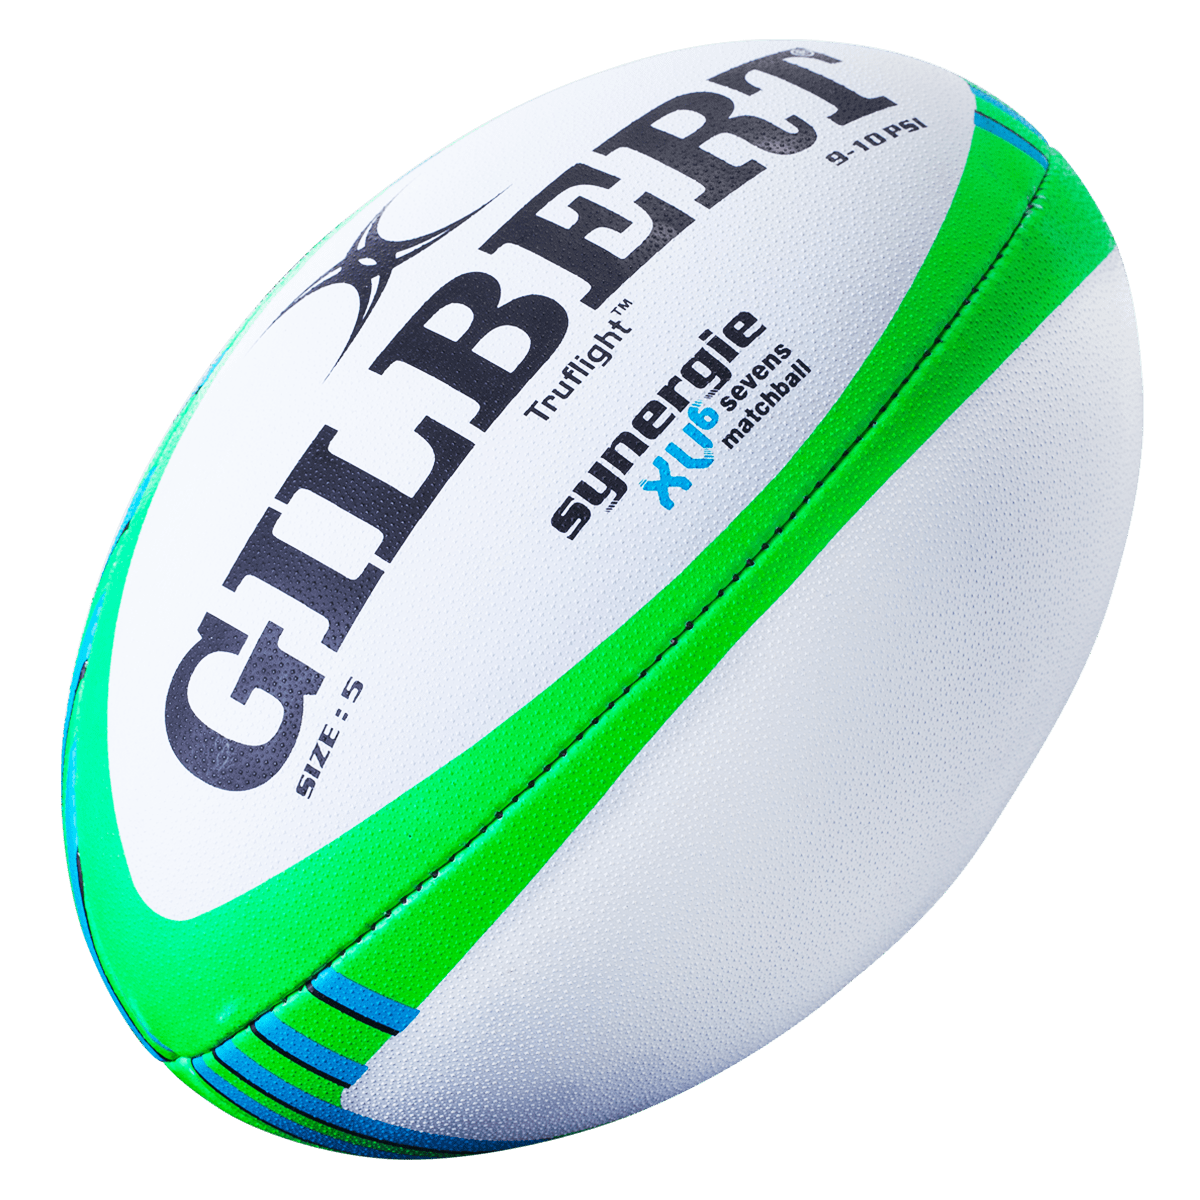 Gilbert XV-6 Sevens Match Rugby Ball